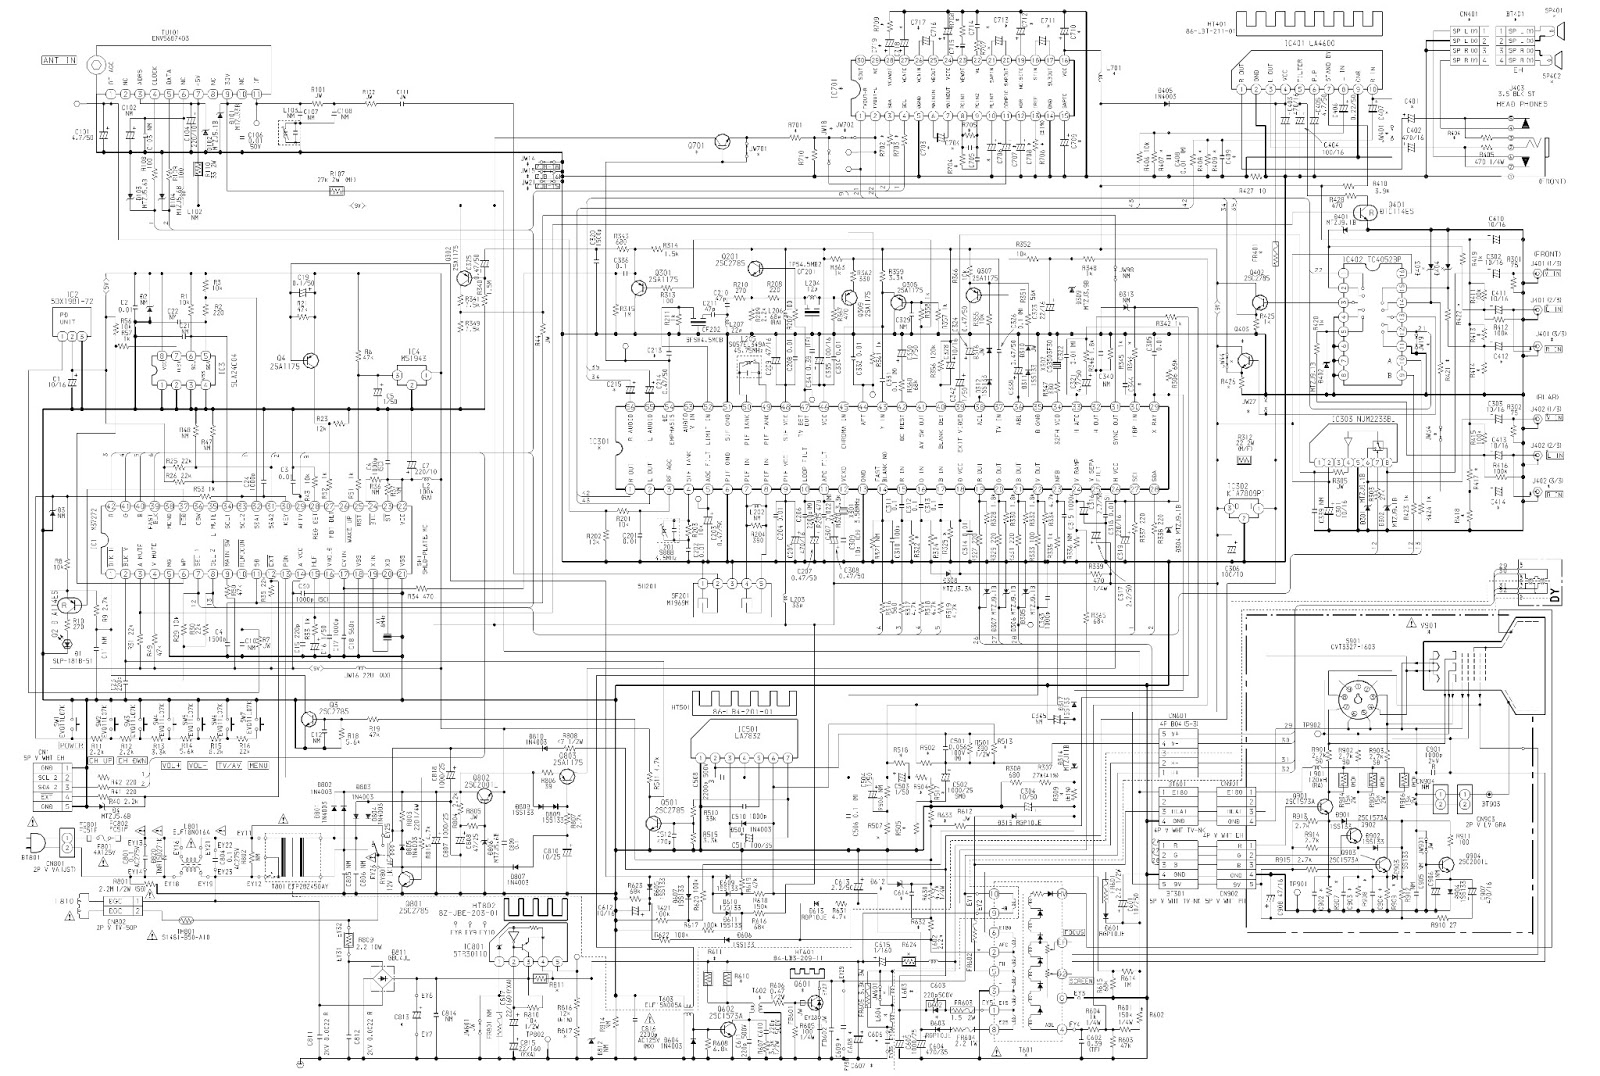 Toshiba Crt Tv Schematic Diagram, Toshiba, Get Free Image